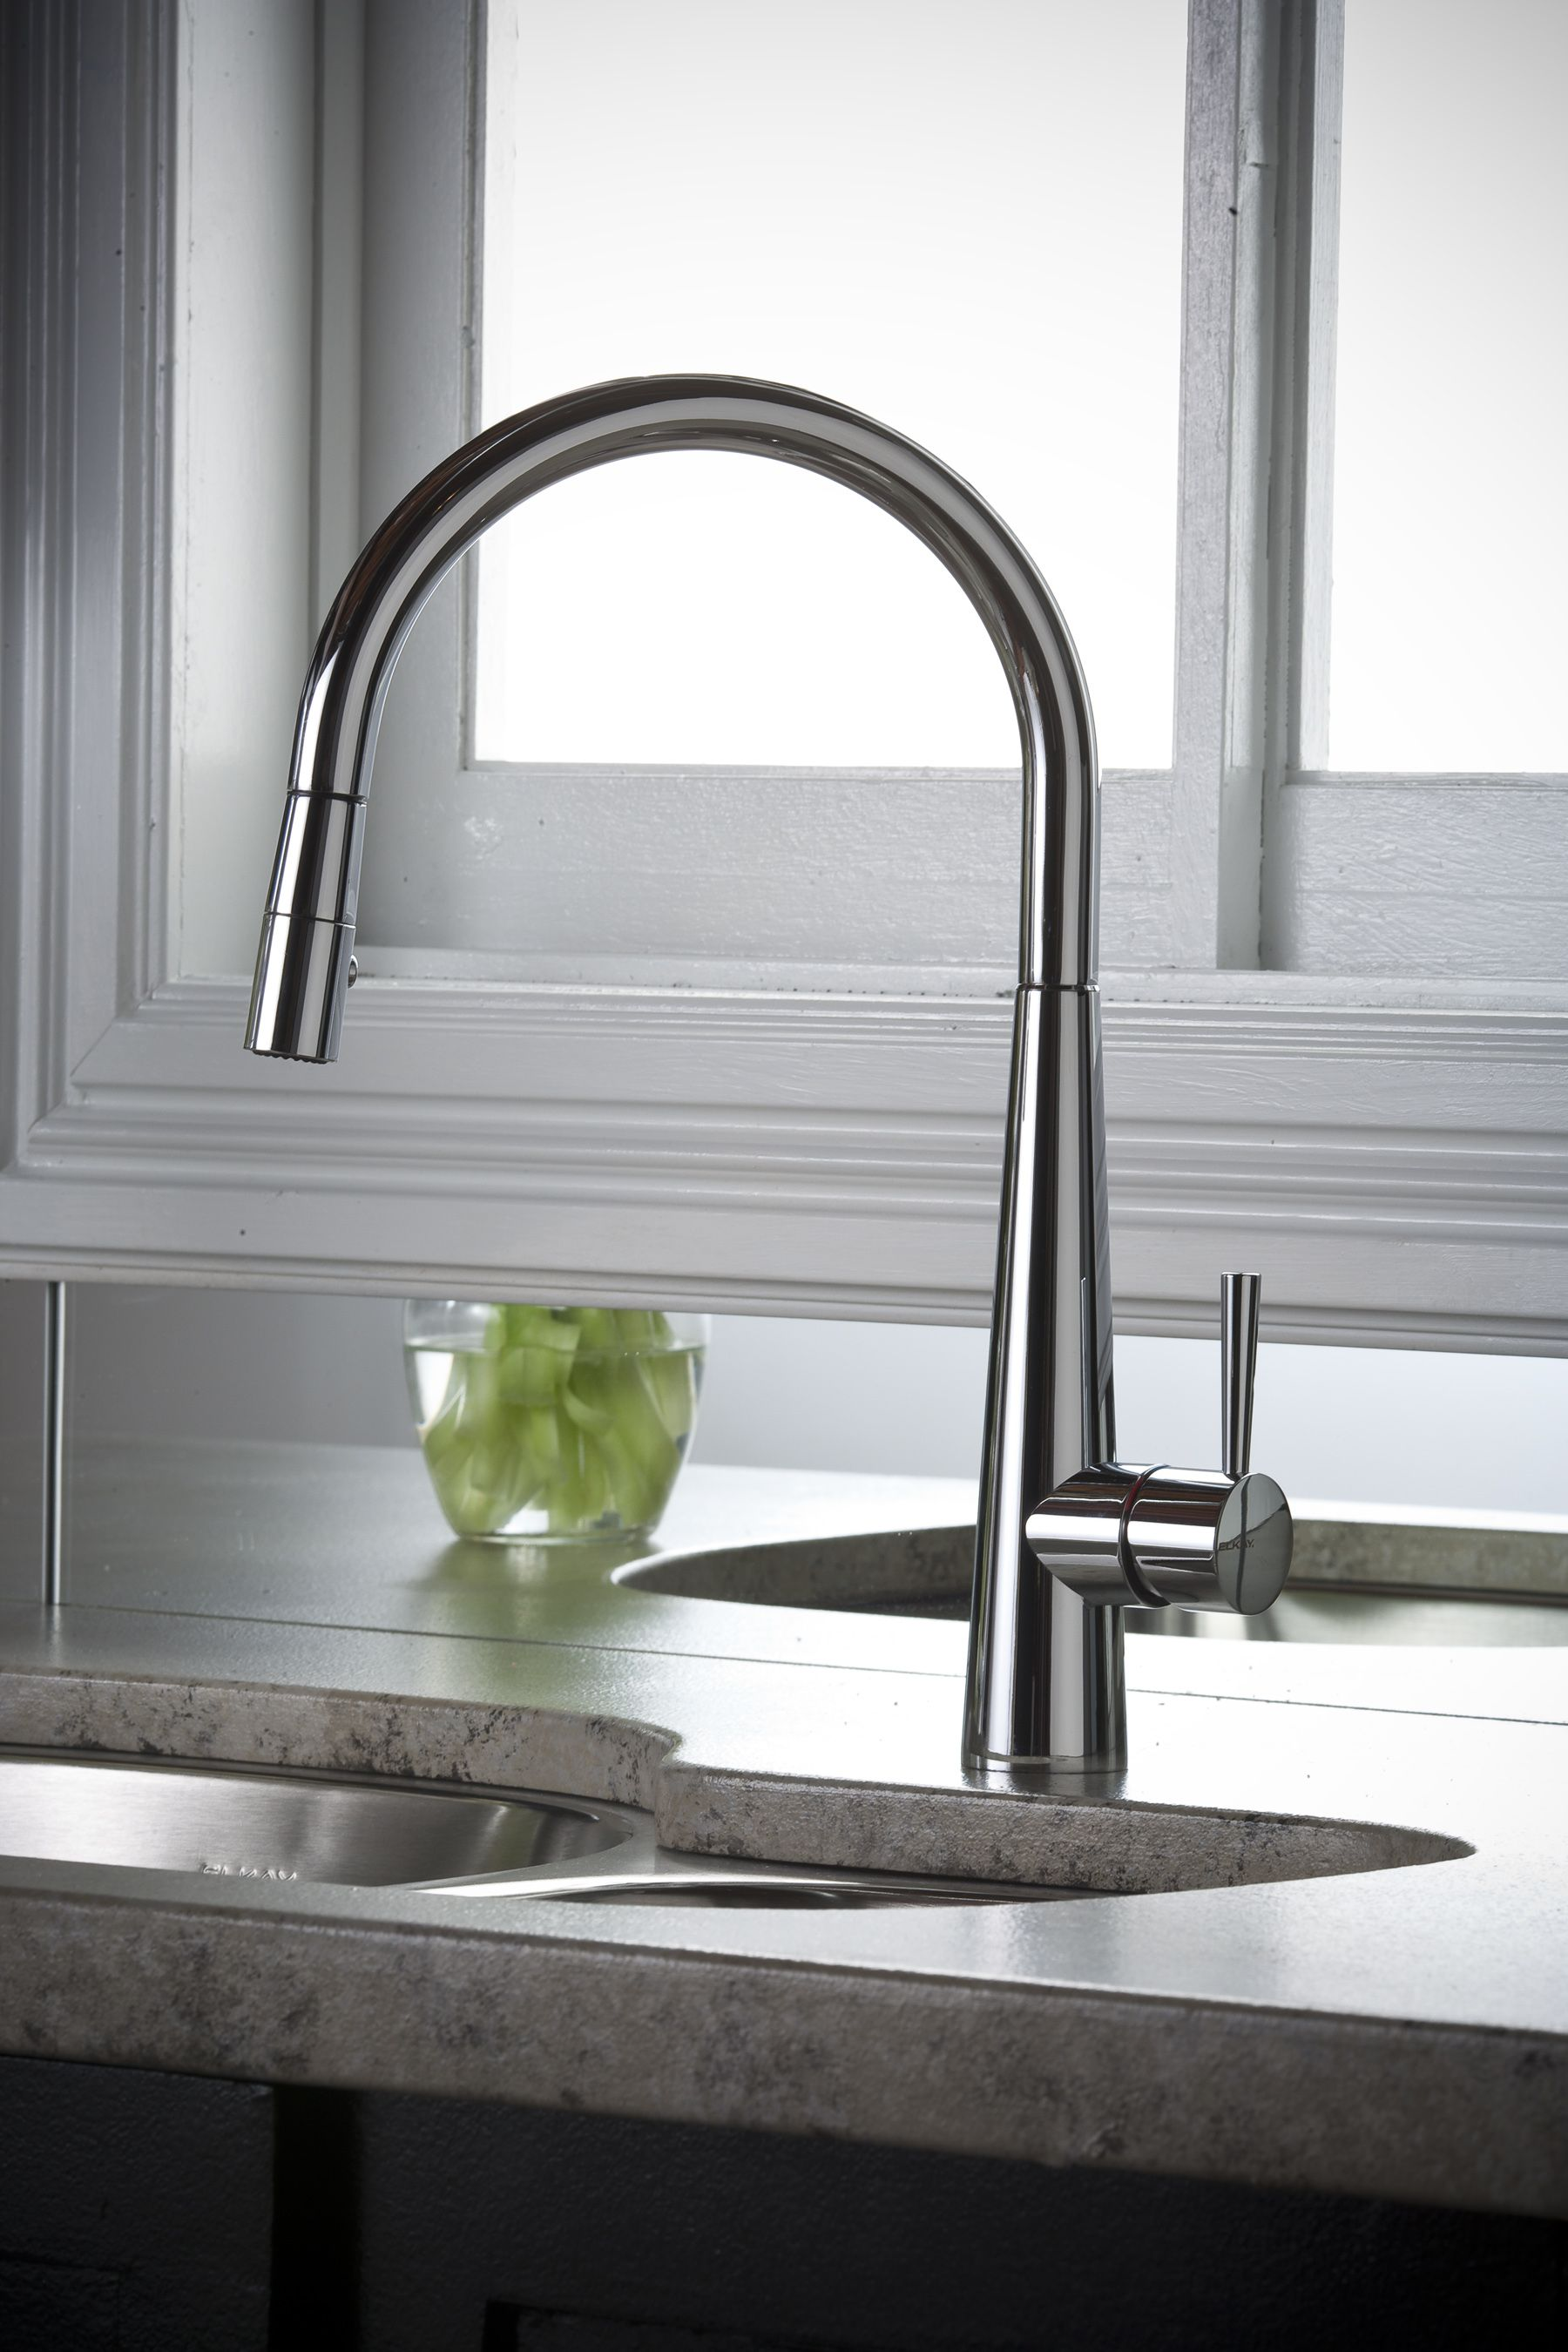 Harmony Single Hole Kitchen Faucet with Pull-down Spray and Lever ...